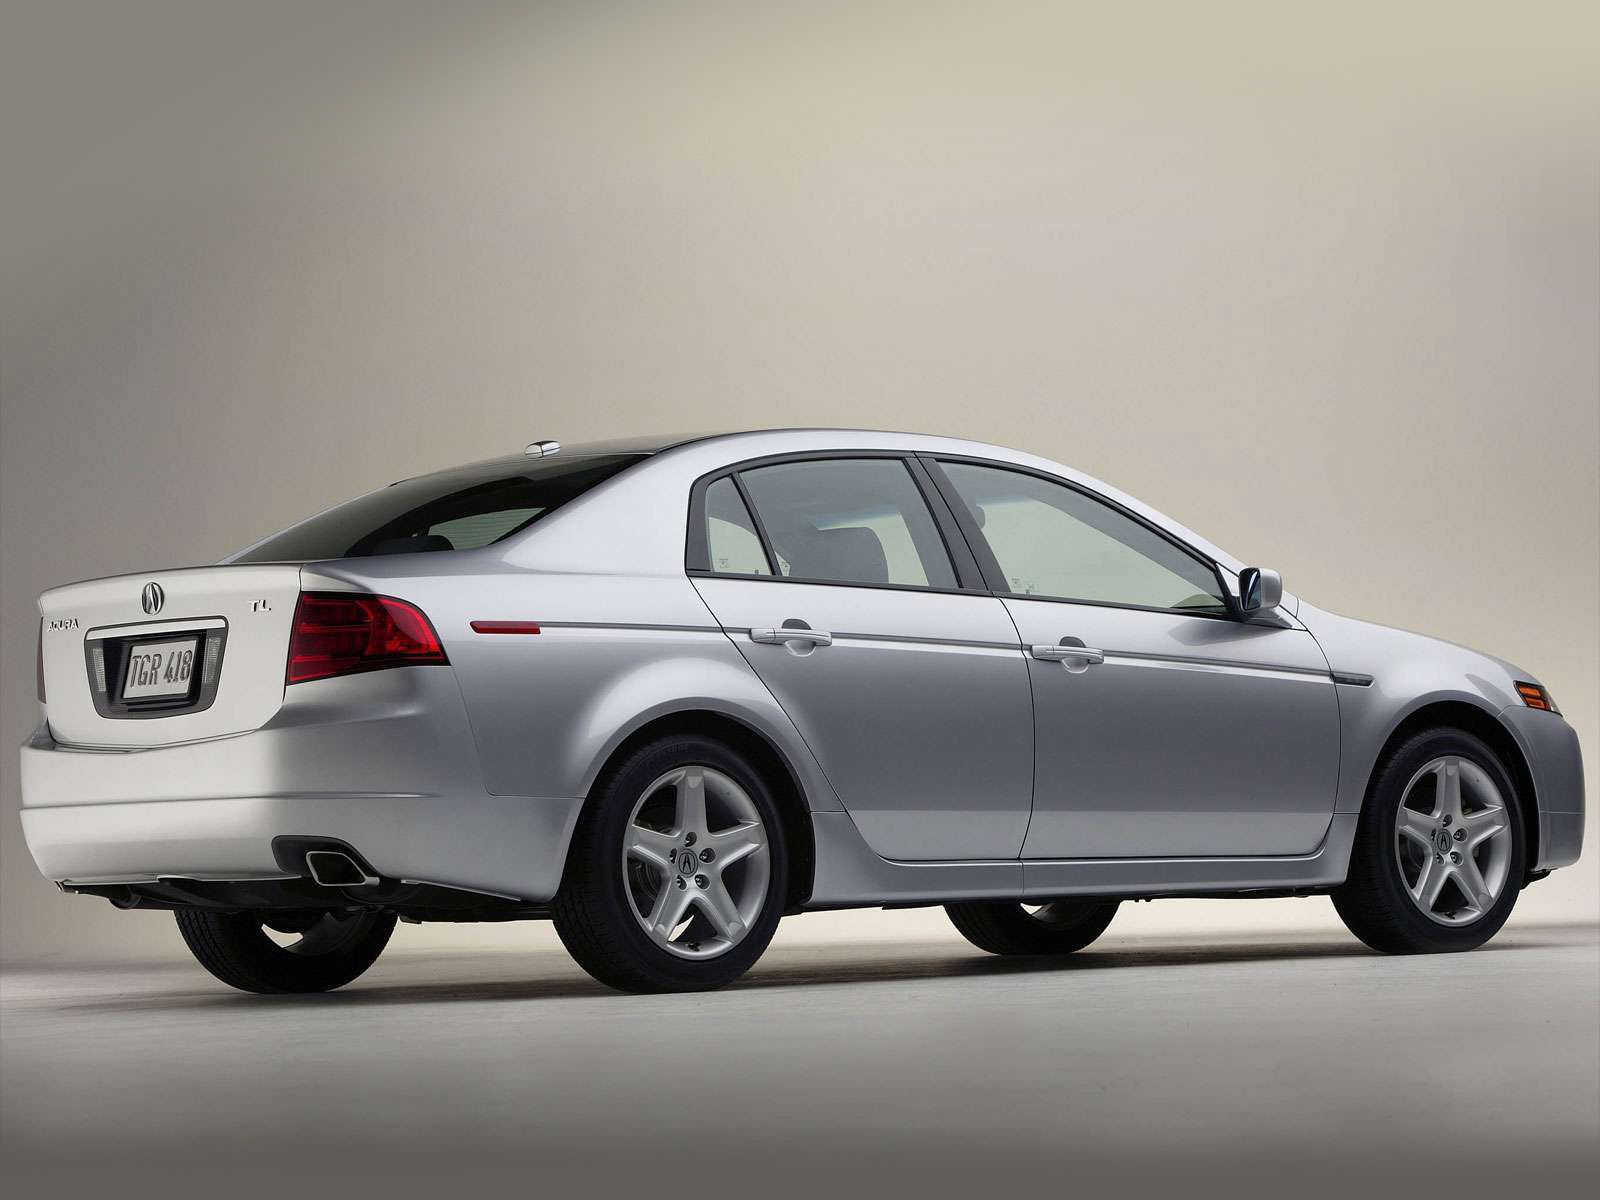 Acura Tl Japanese Car Wallpapers